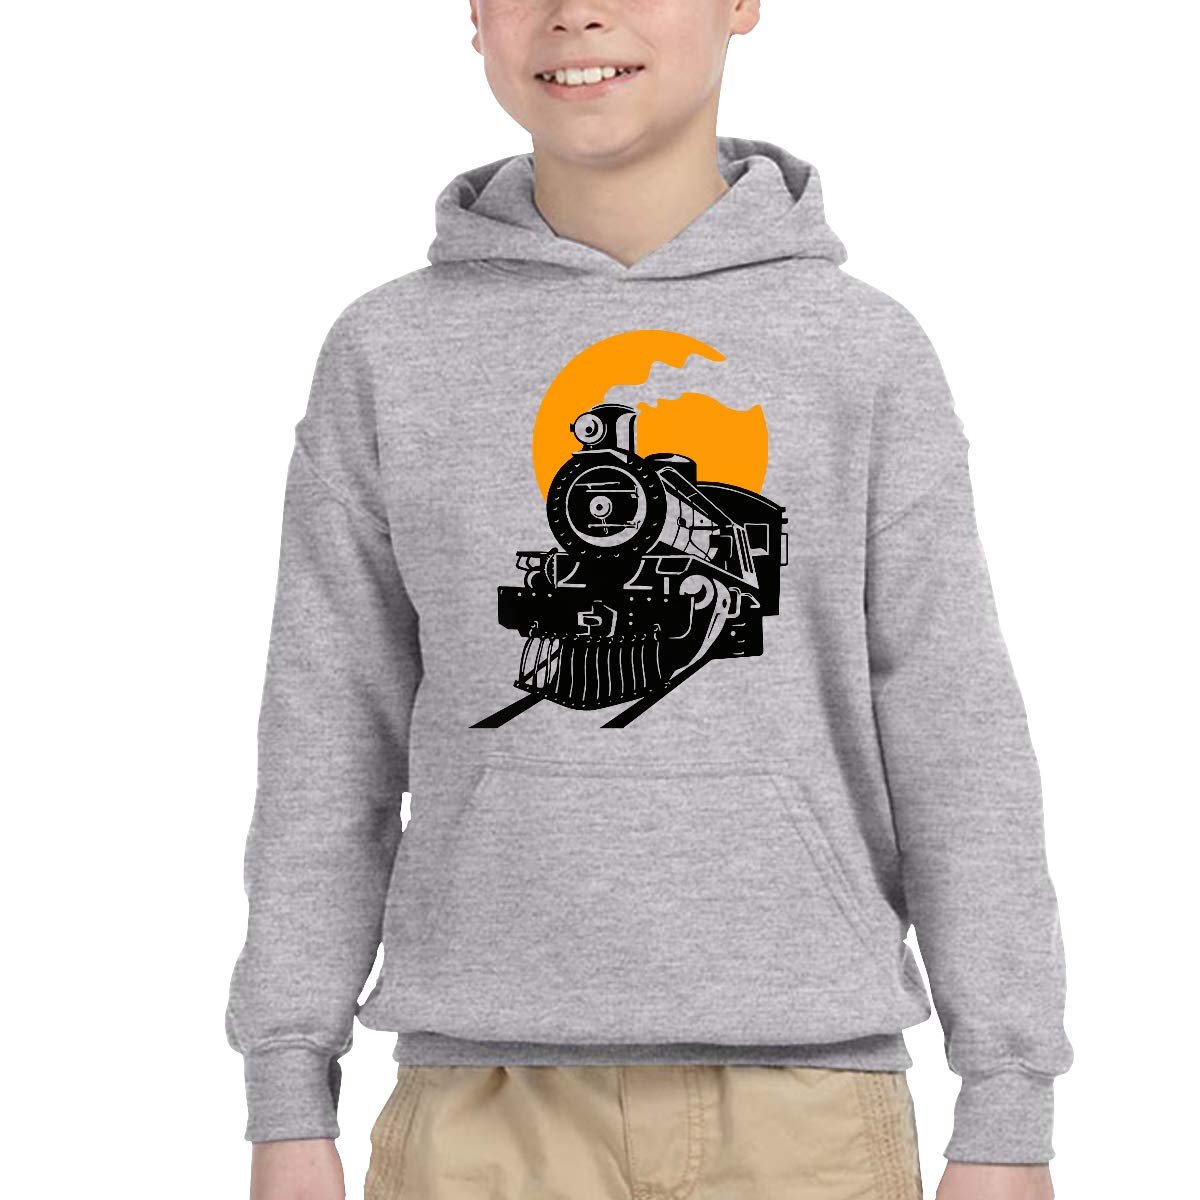 YTH/&123 Kids /& Toddler Pullover Hoodie Fleece Steam Train Sweater